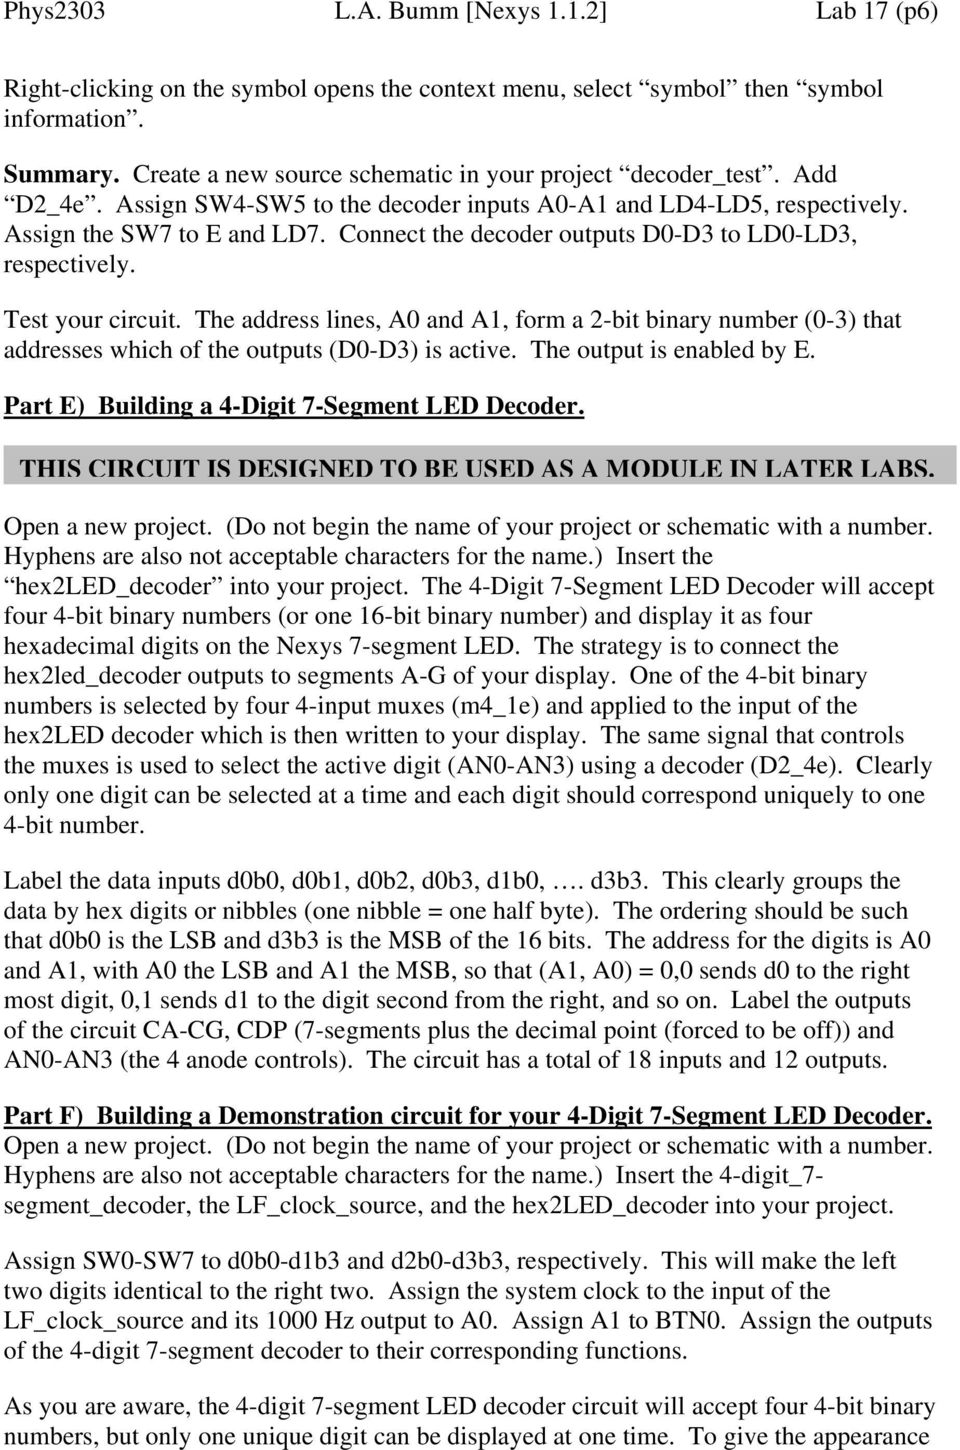 Lab 17 Building A 4 Digit 7 Segment Led Decoder Pdf Street Light Circuit Project Part2 Projects Circuits Connect The Outputs D0 D3 To Ld0 Ld3 Respectively Test Your